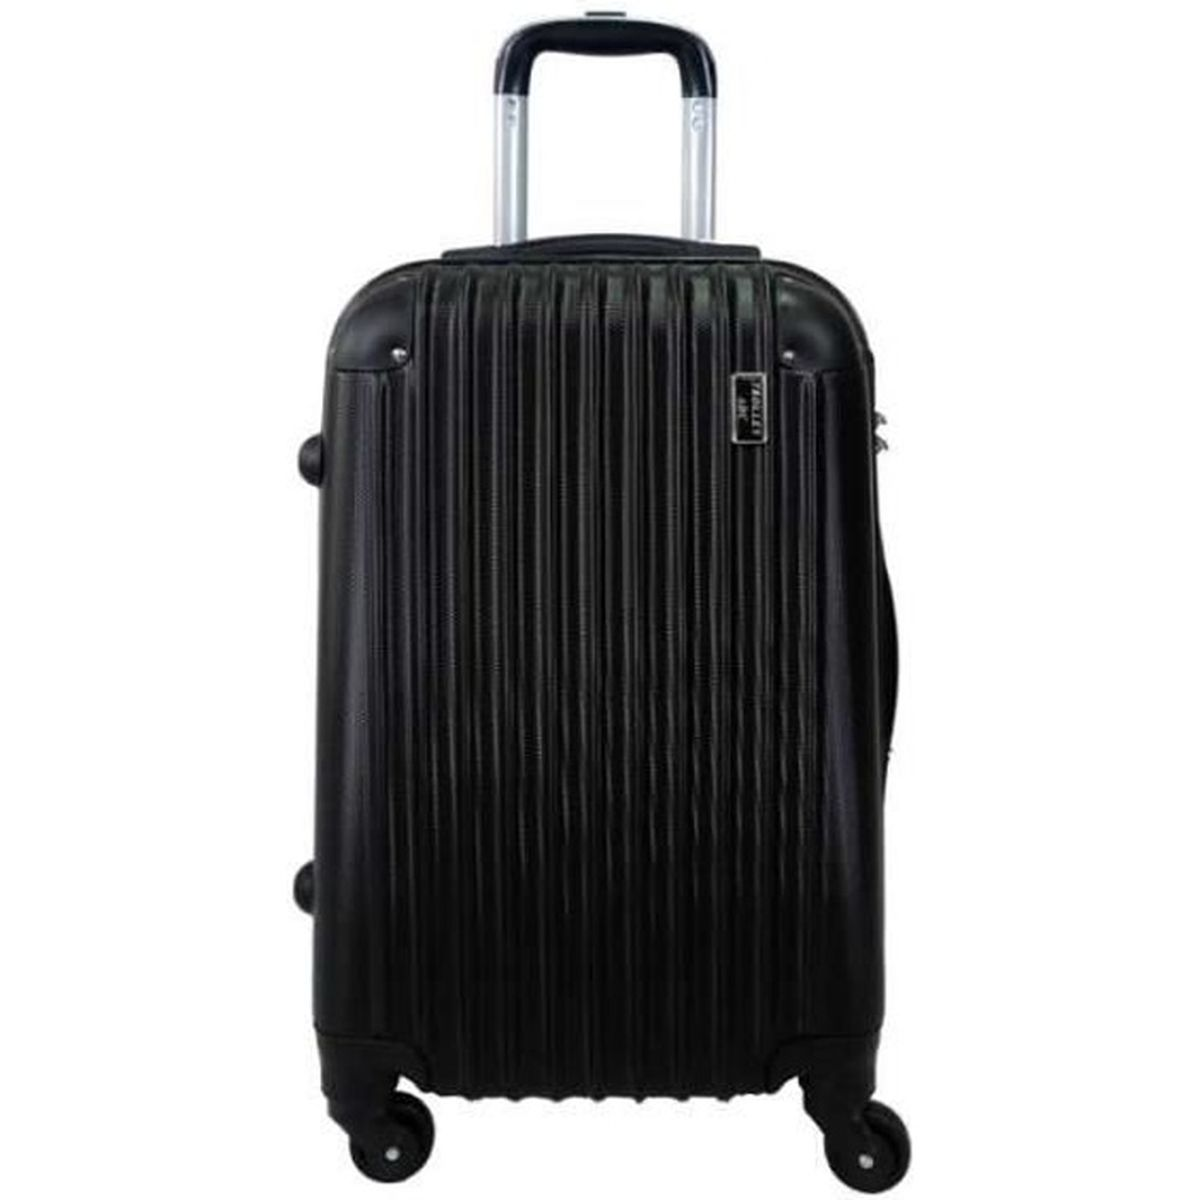 valise trolley grande taille 4 roues 75cm trolley adc rigide ray noir noir achat vente. Black Bedroom Furniture Sets. Home Design Ideas